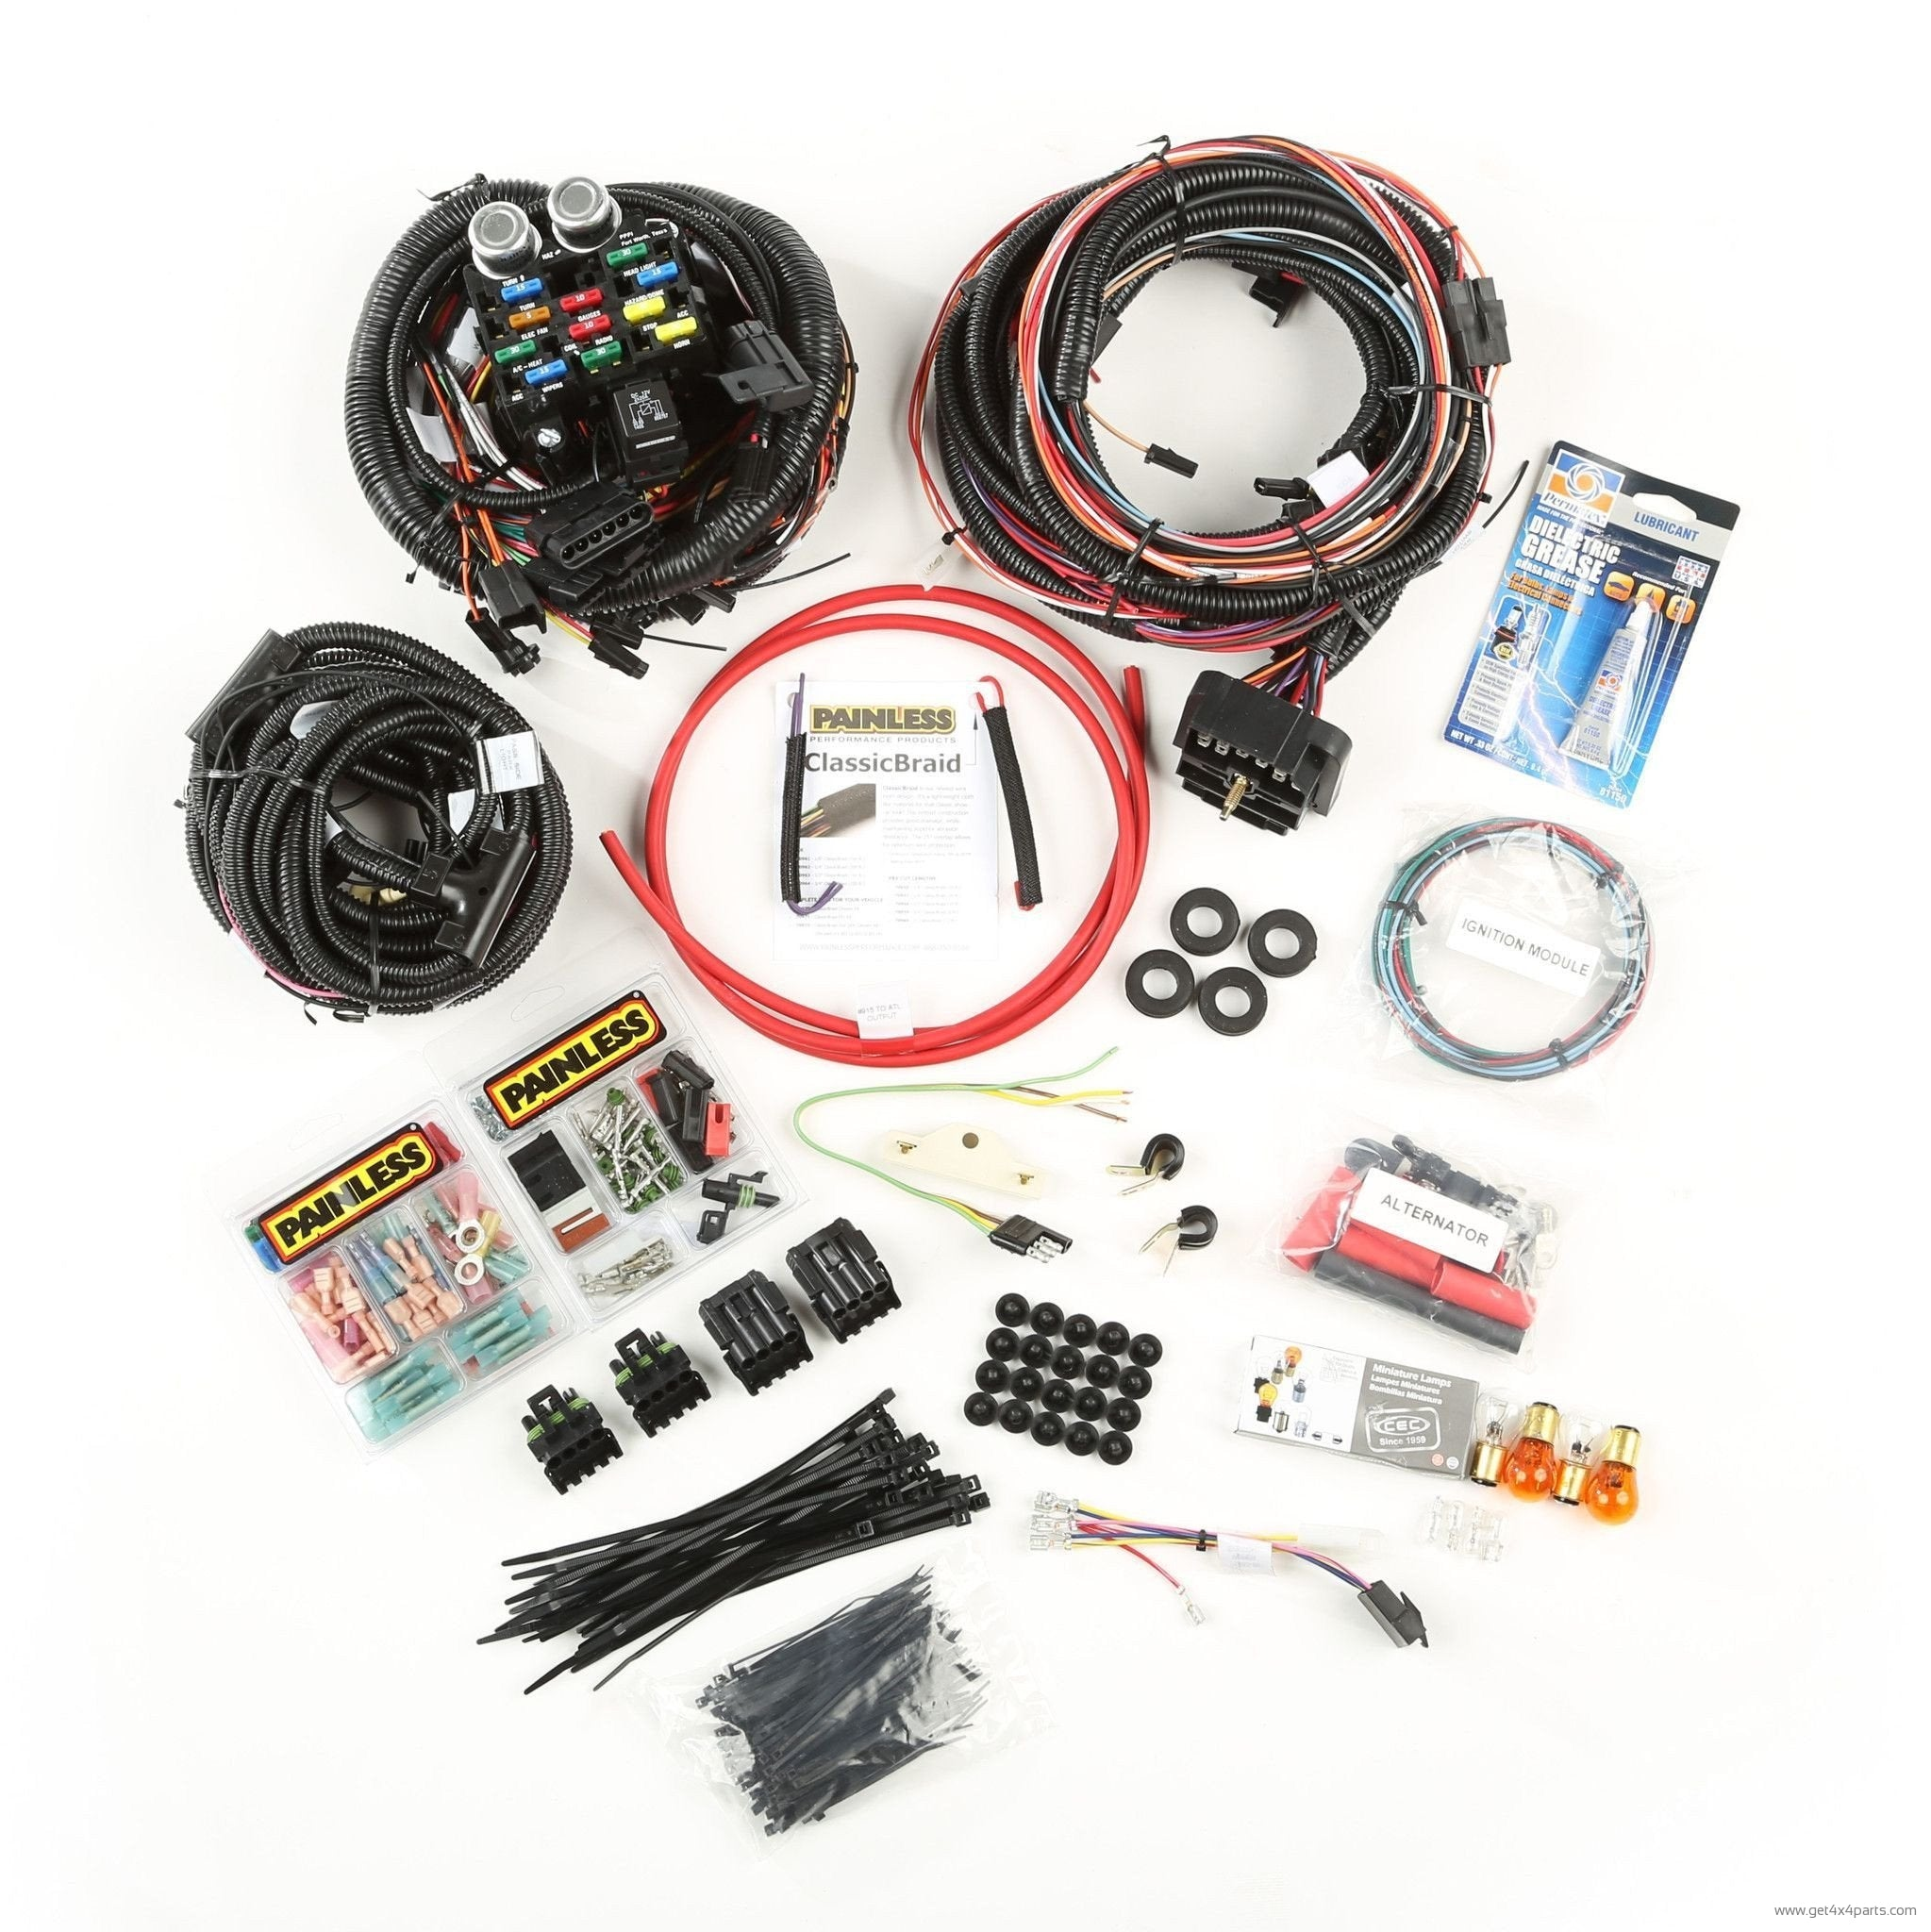 painless wiring harness 76 86 jeep cj models painless wiring harness 76 86 jeep cj boss bv9967bi connector wiring diagram dolgular com  at gsmx.co